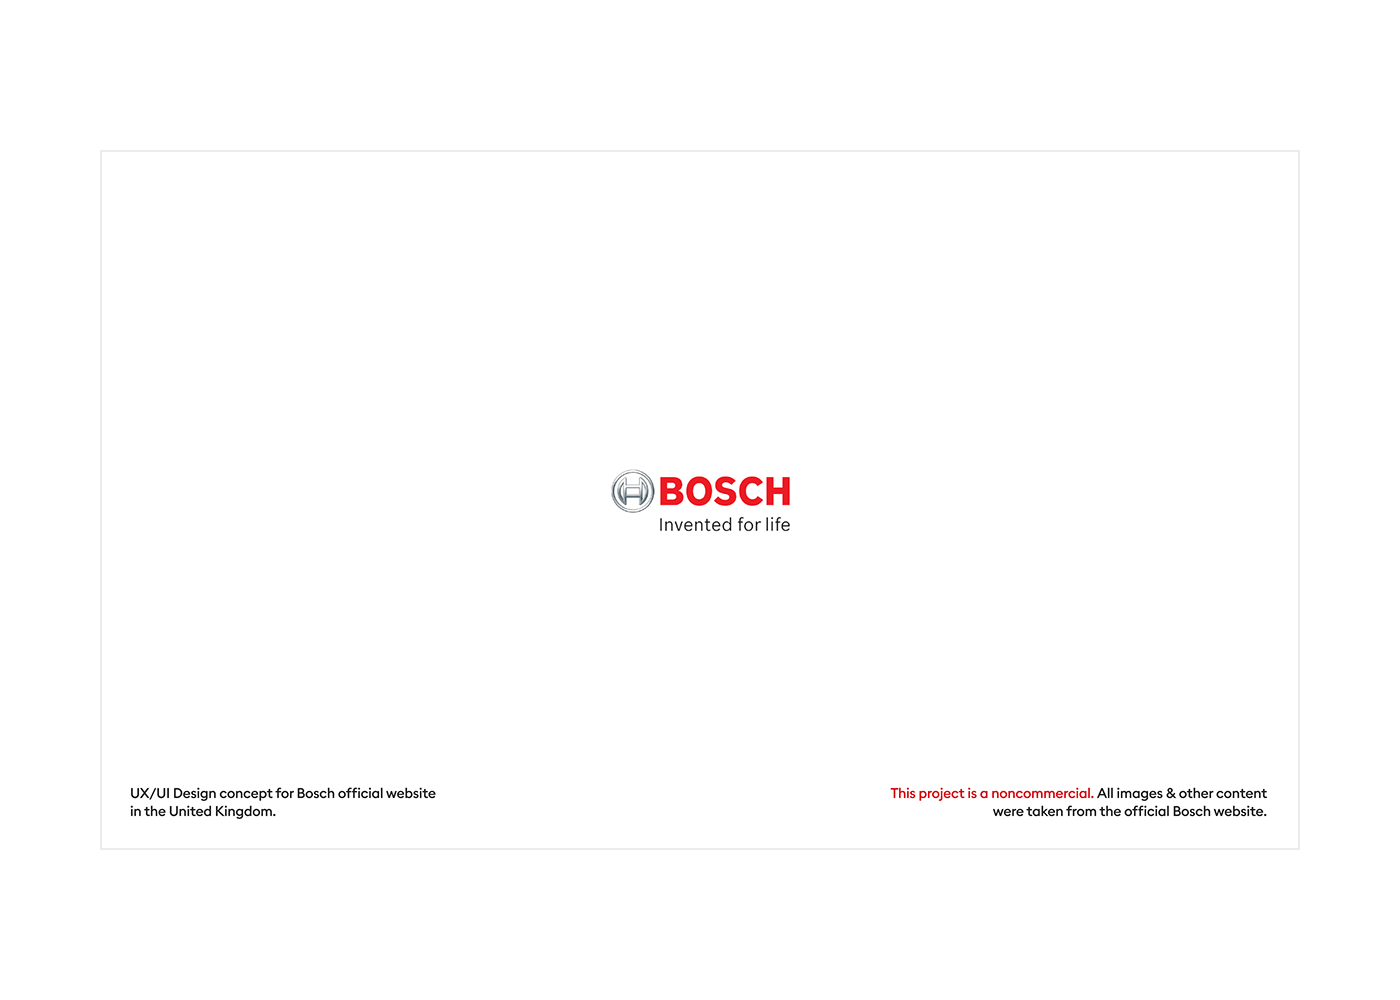 appliances corporate Experience home redesign UI/UX user interface uxdesign Webdesign Website